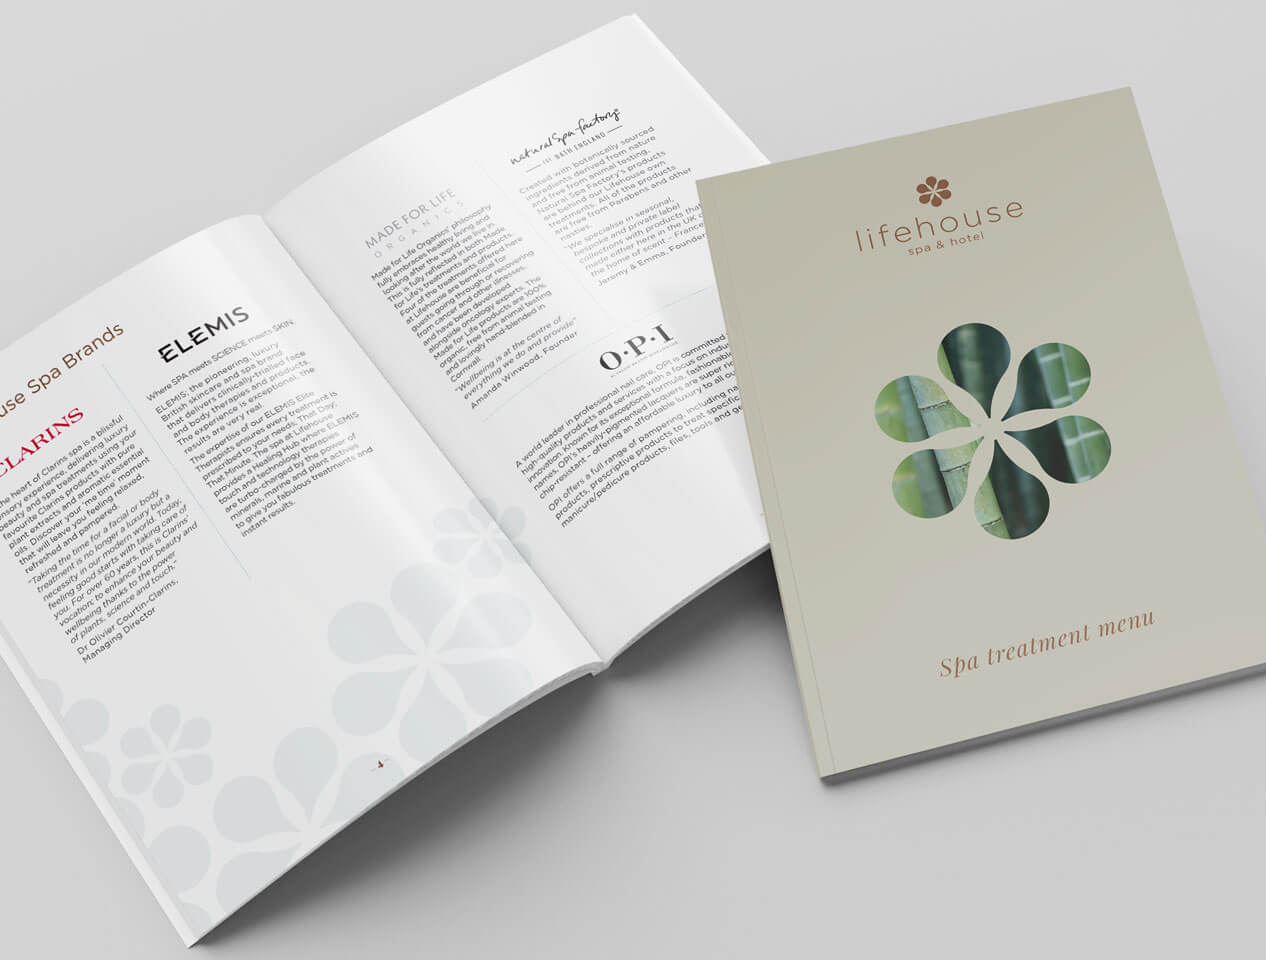 Image showing cover and internal pages of Lifehouse treament menu